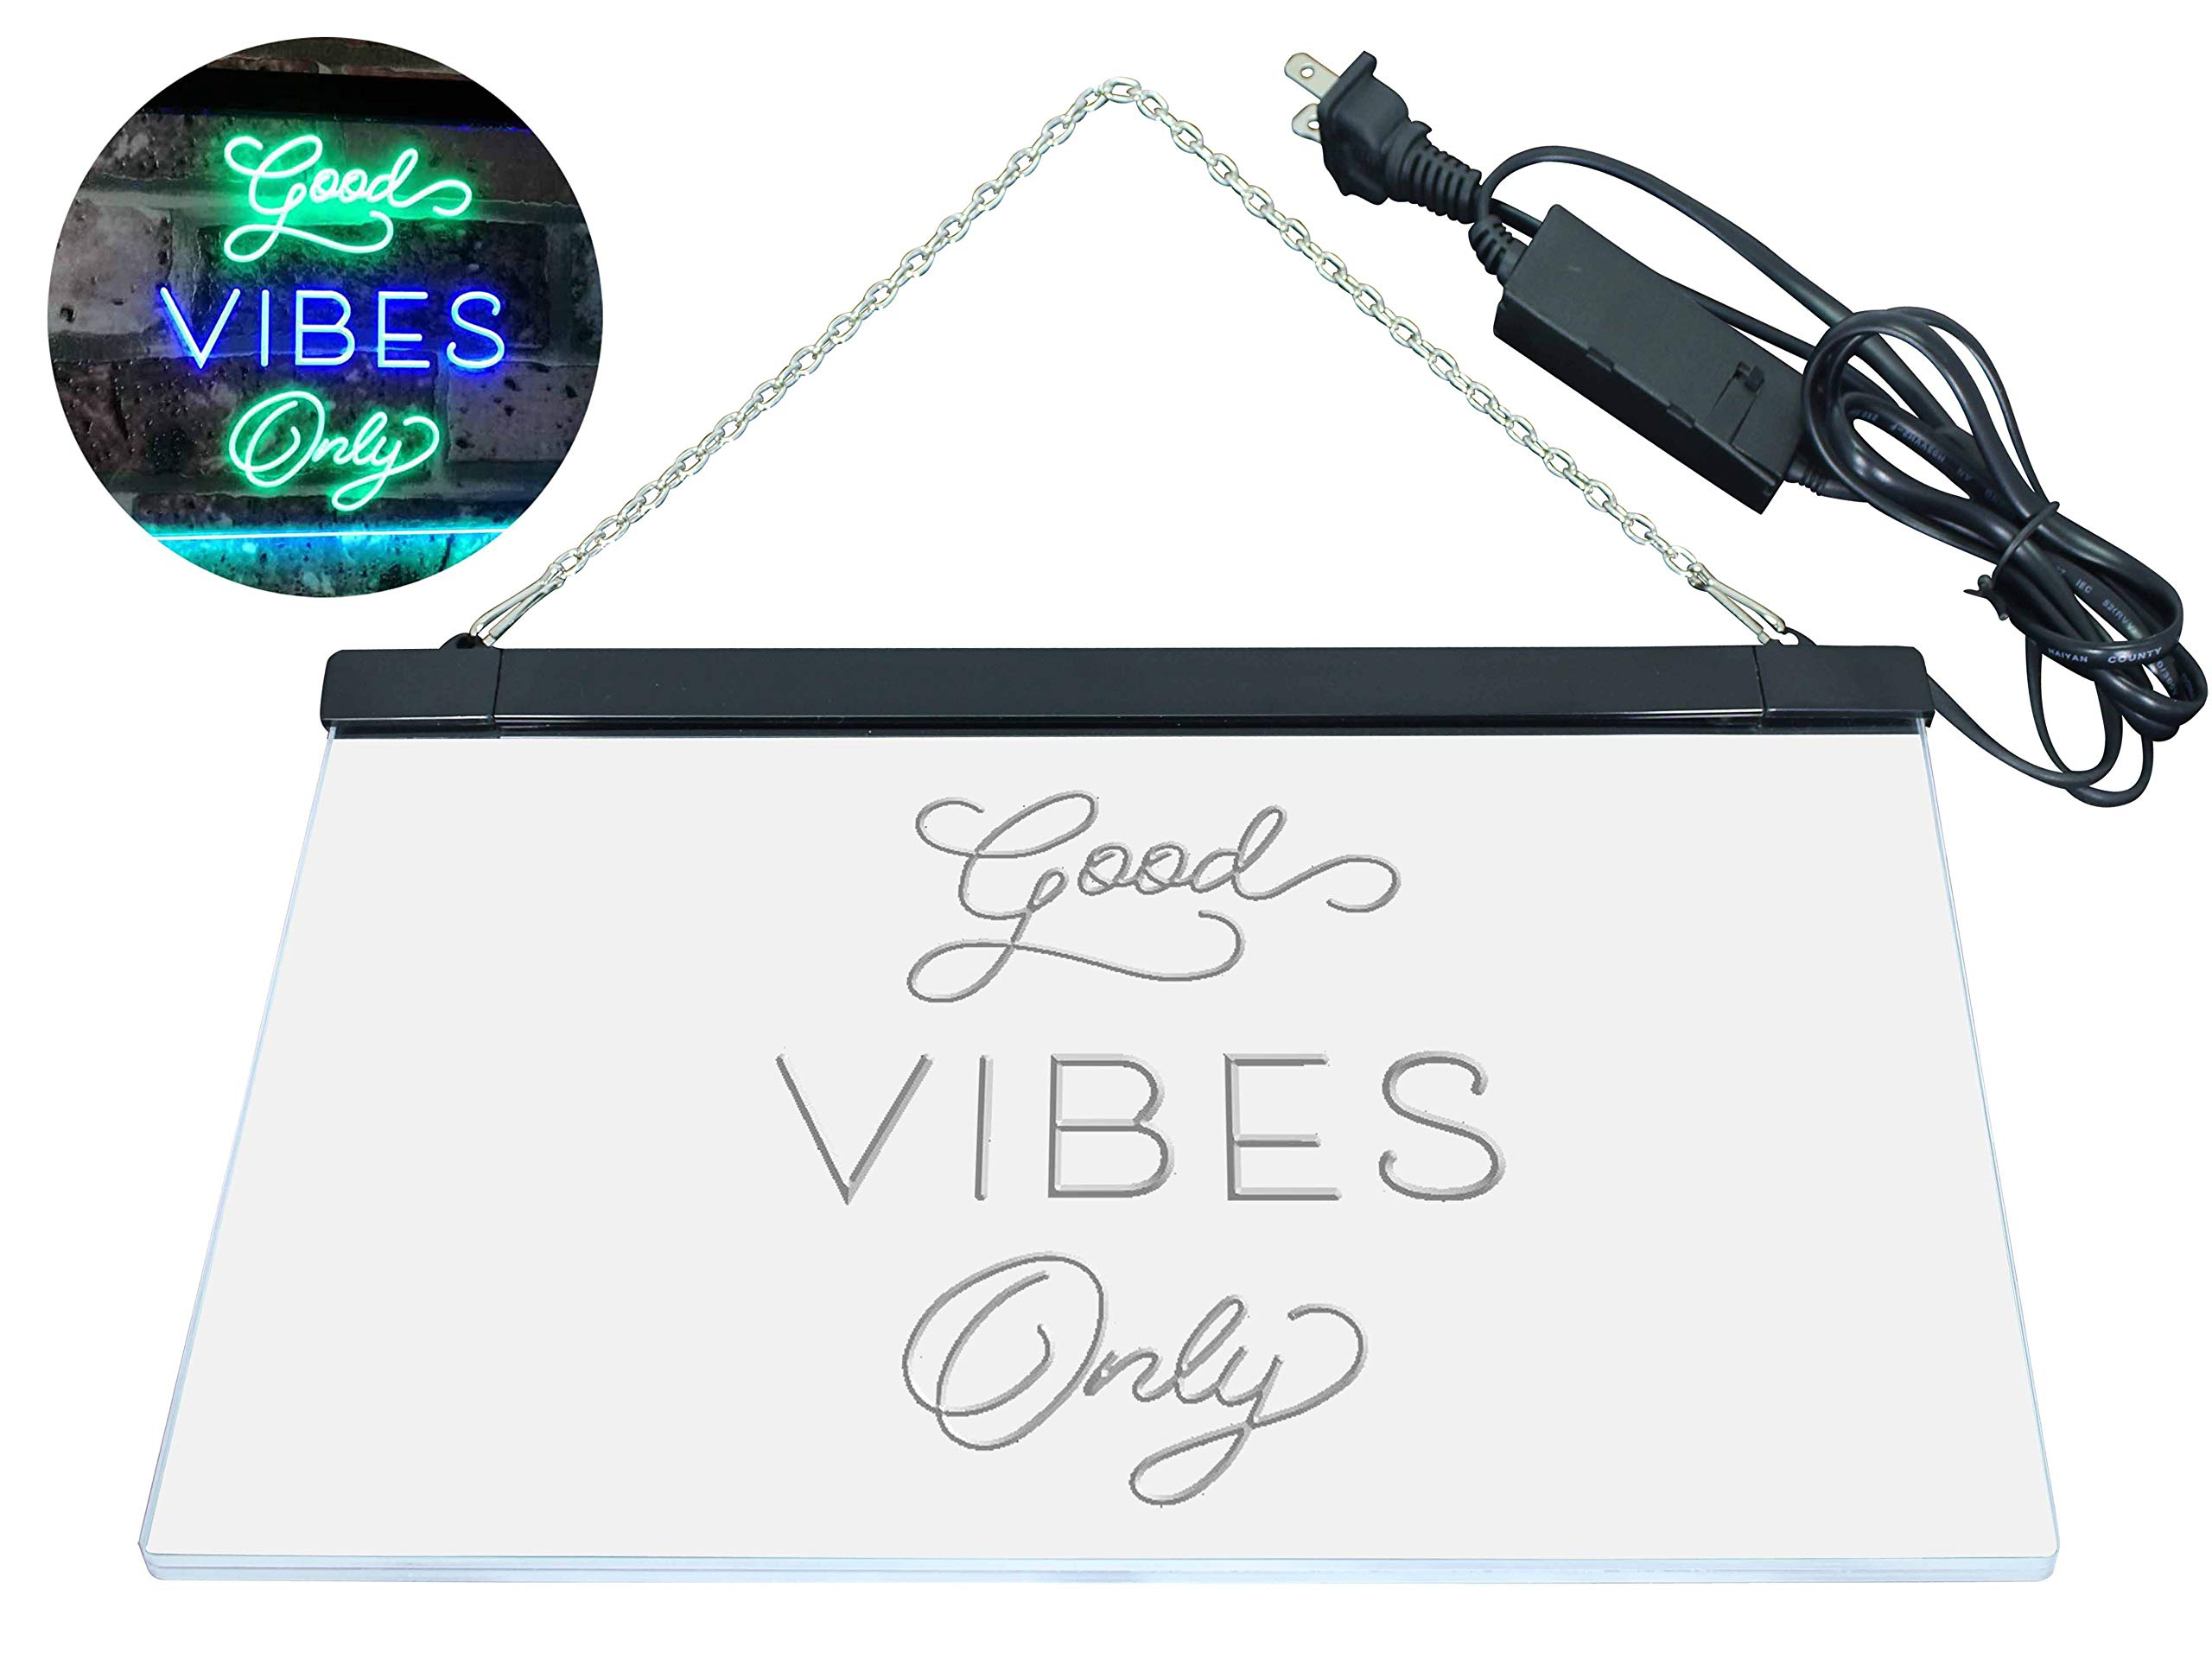 AdvpPro 2C Good Vibes Only Home Bar Disco Room Display Dual Color LED Neon Sign Green & Blue 12'' x 8.5'' st6s32-i3076-gb